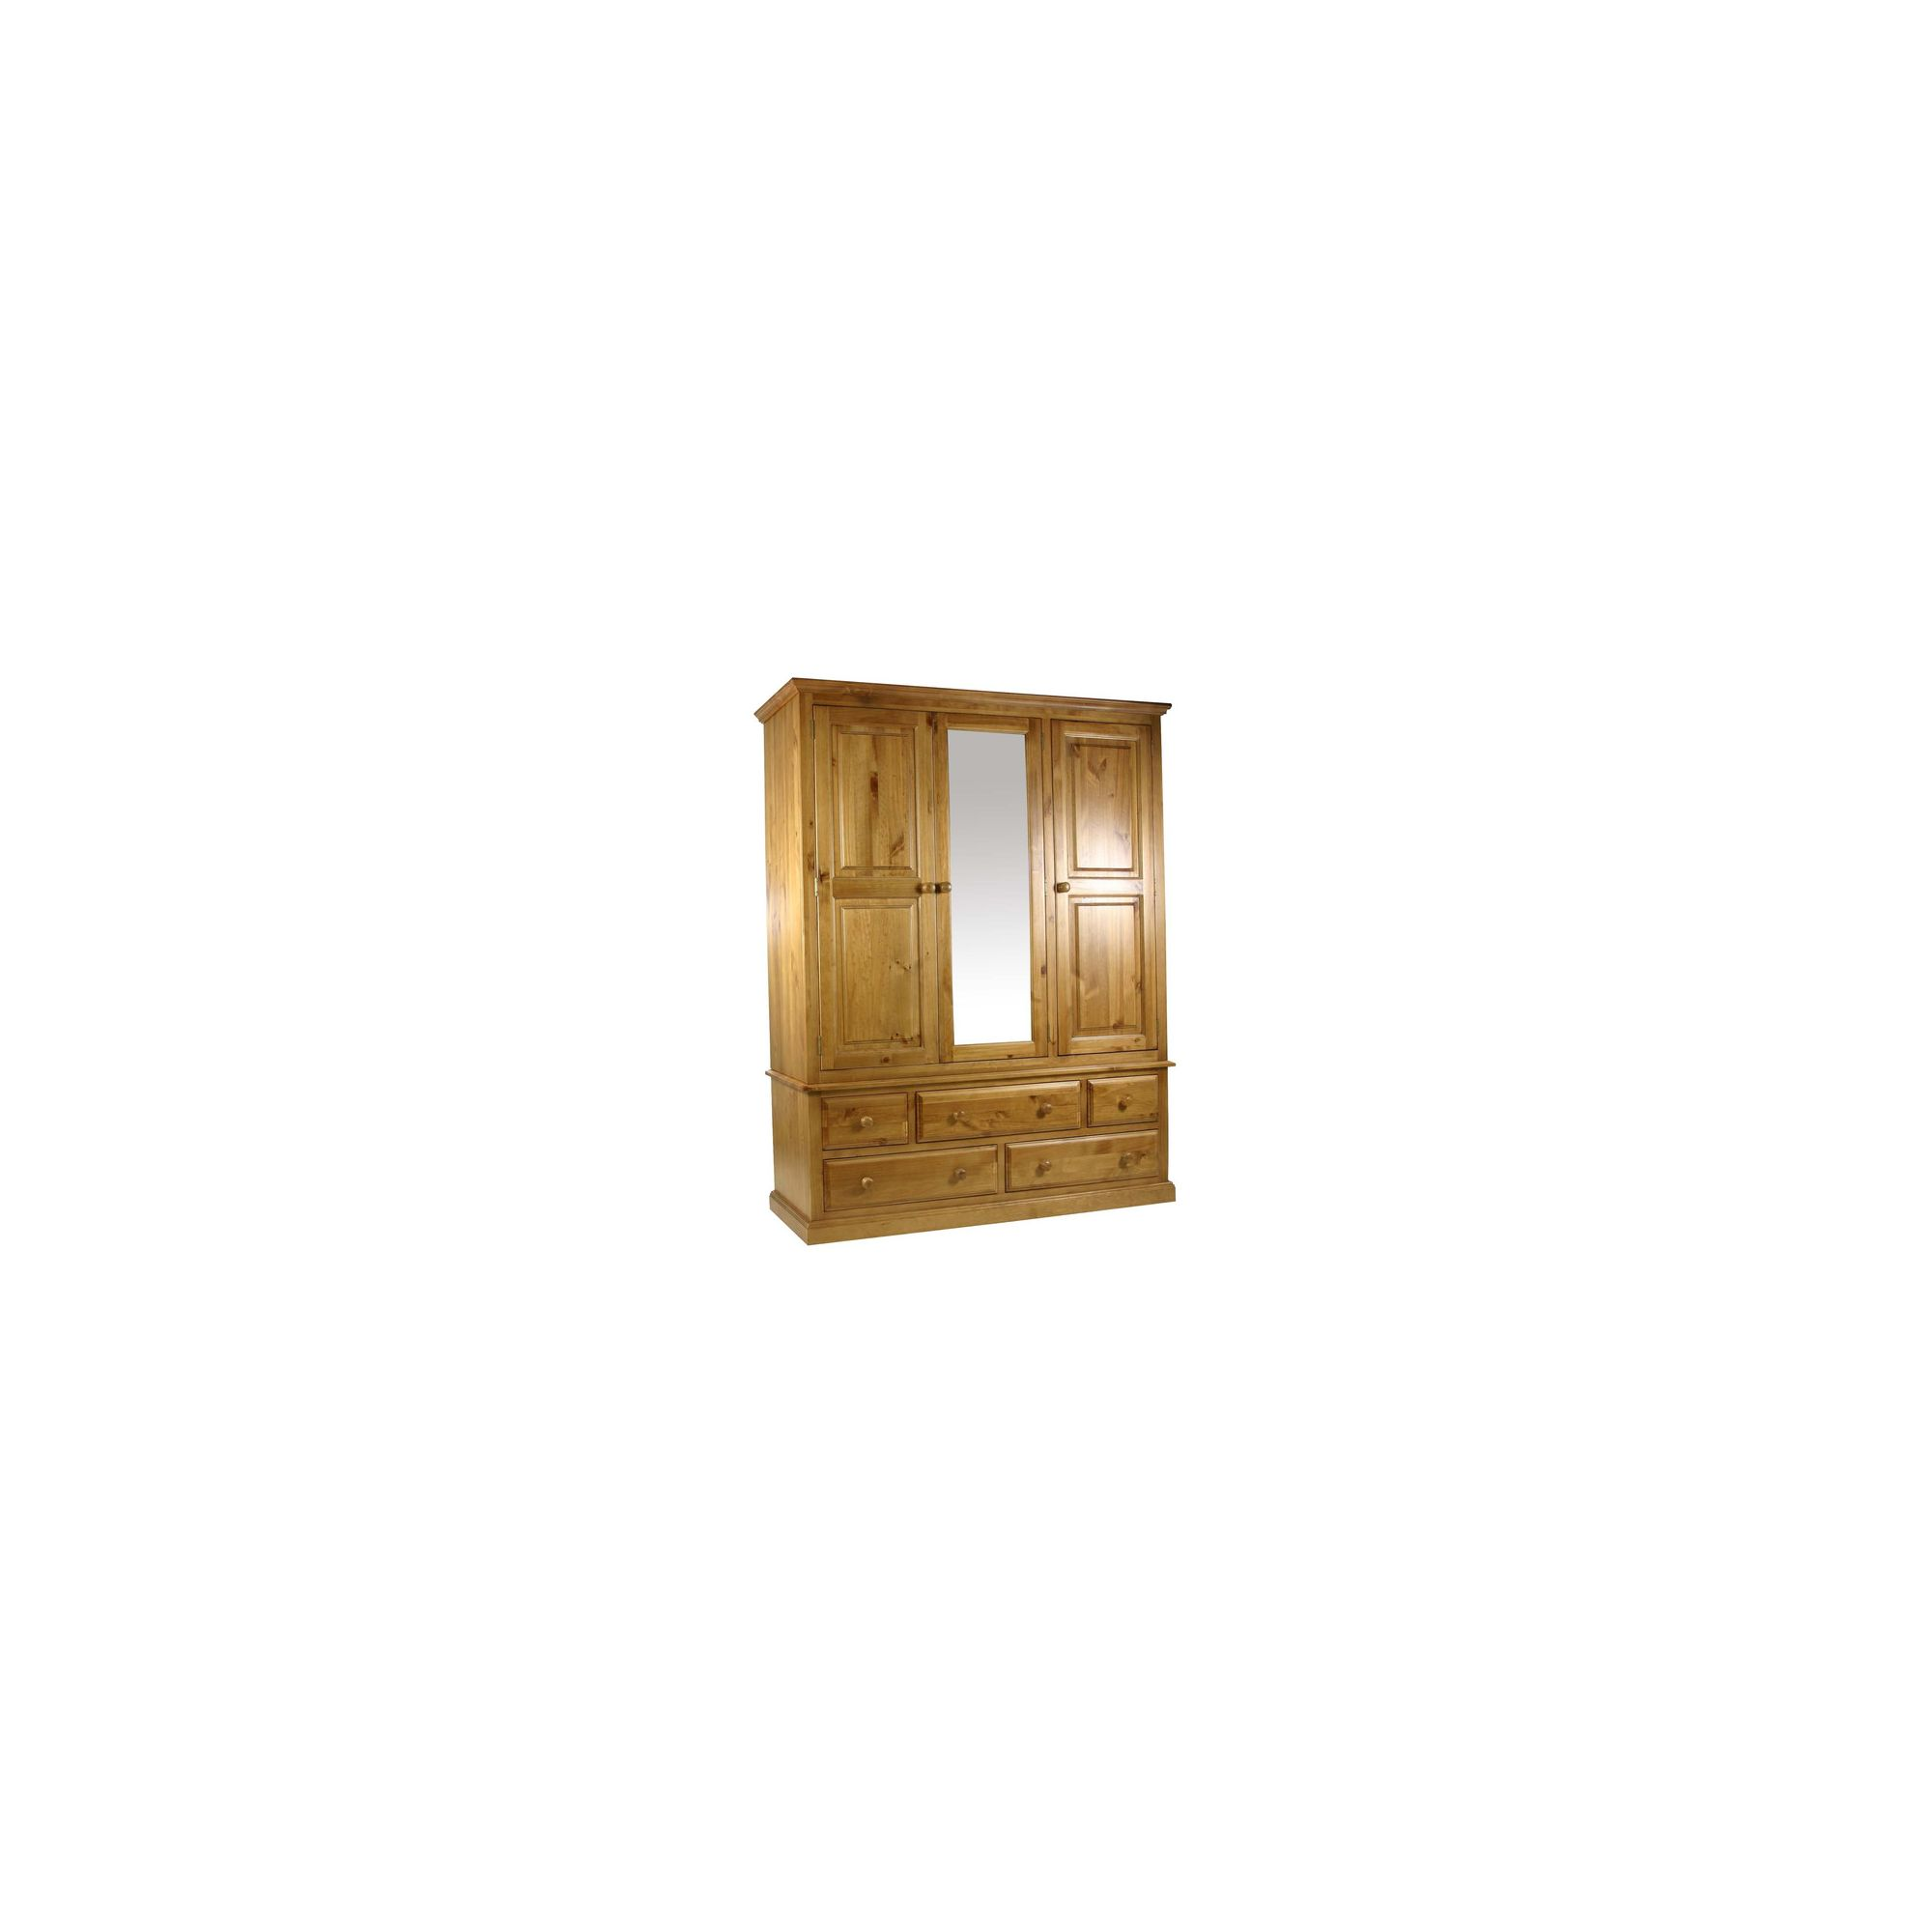 Kelburn Furniture Pine Gents Wardrobe with Mirrored Centre Door in Antique Wax Lacquer at Tesco Direct